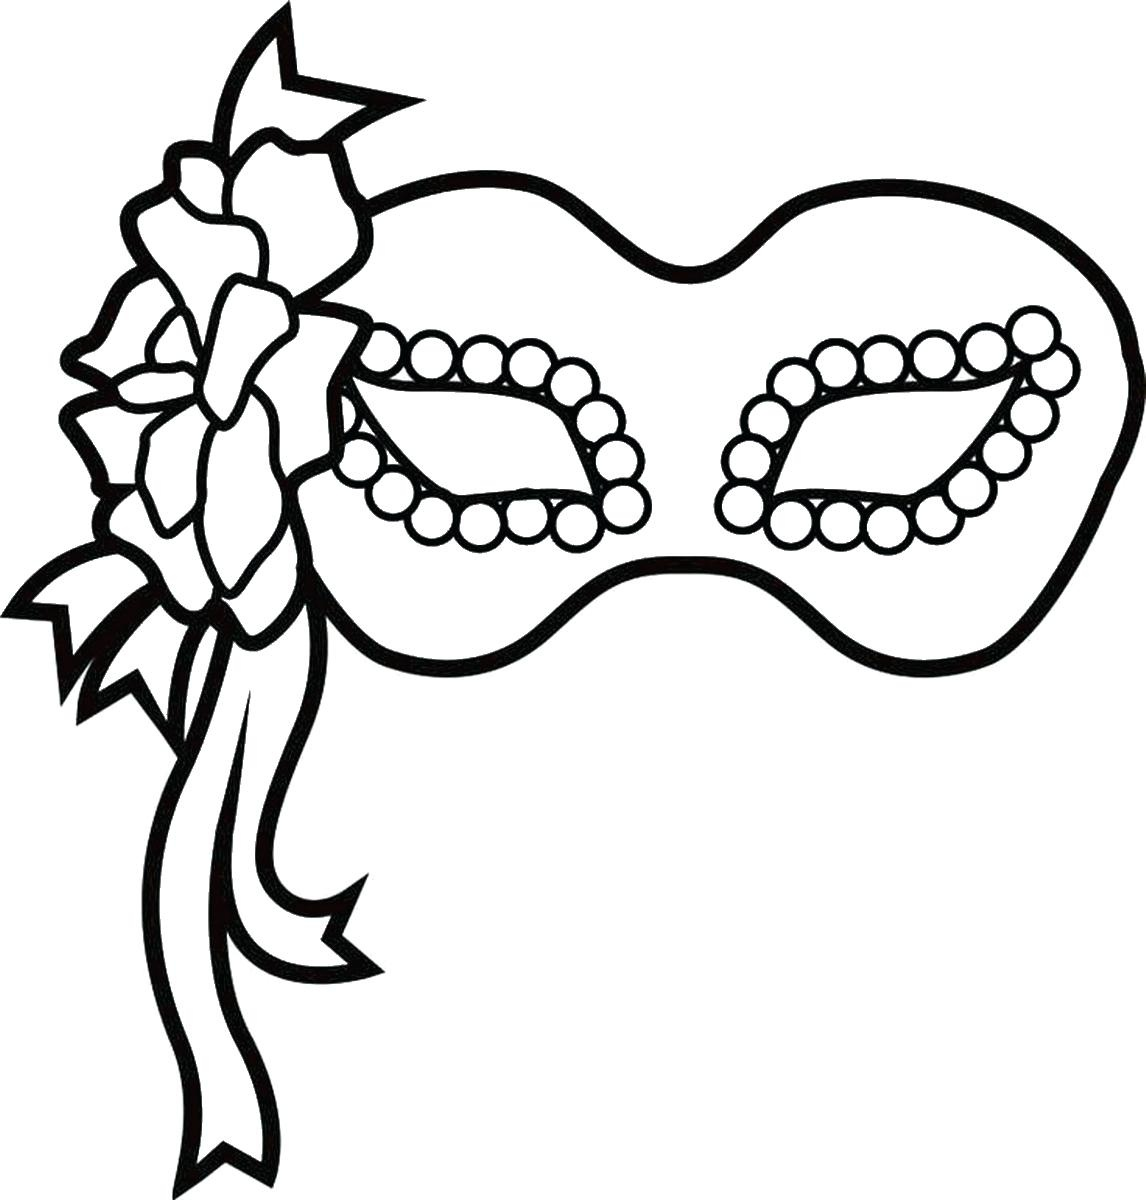 Homey Idea Coloring Pages Free Printable Charming Decoration For In - Free Printable Mardi Gras Masks